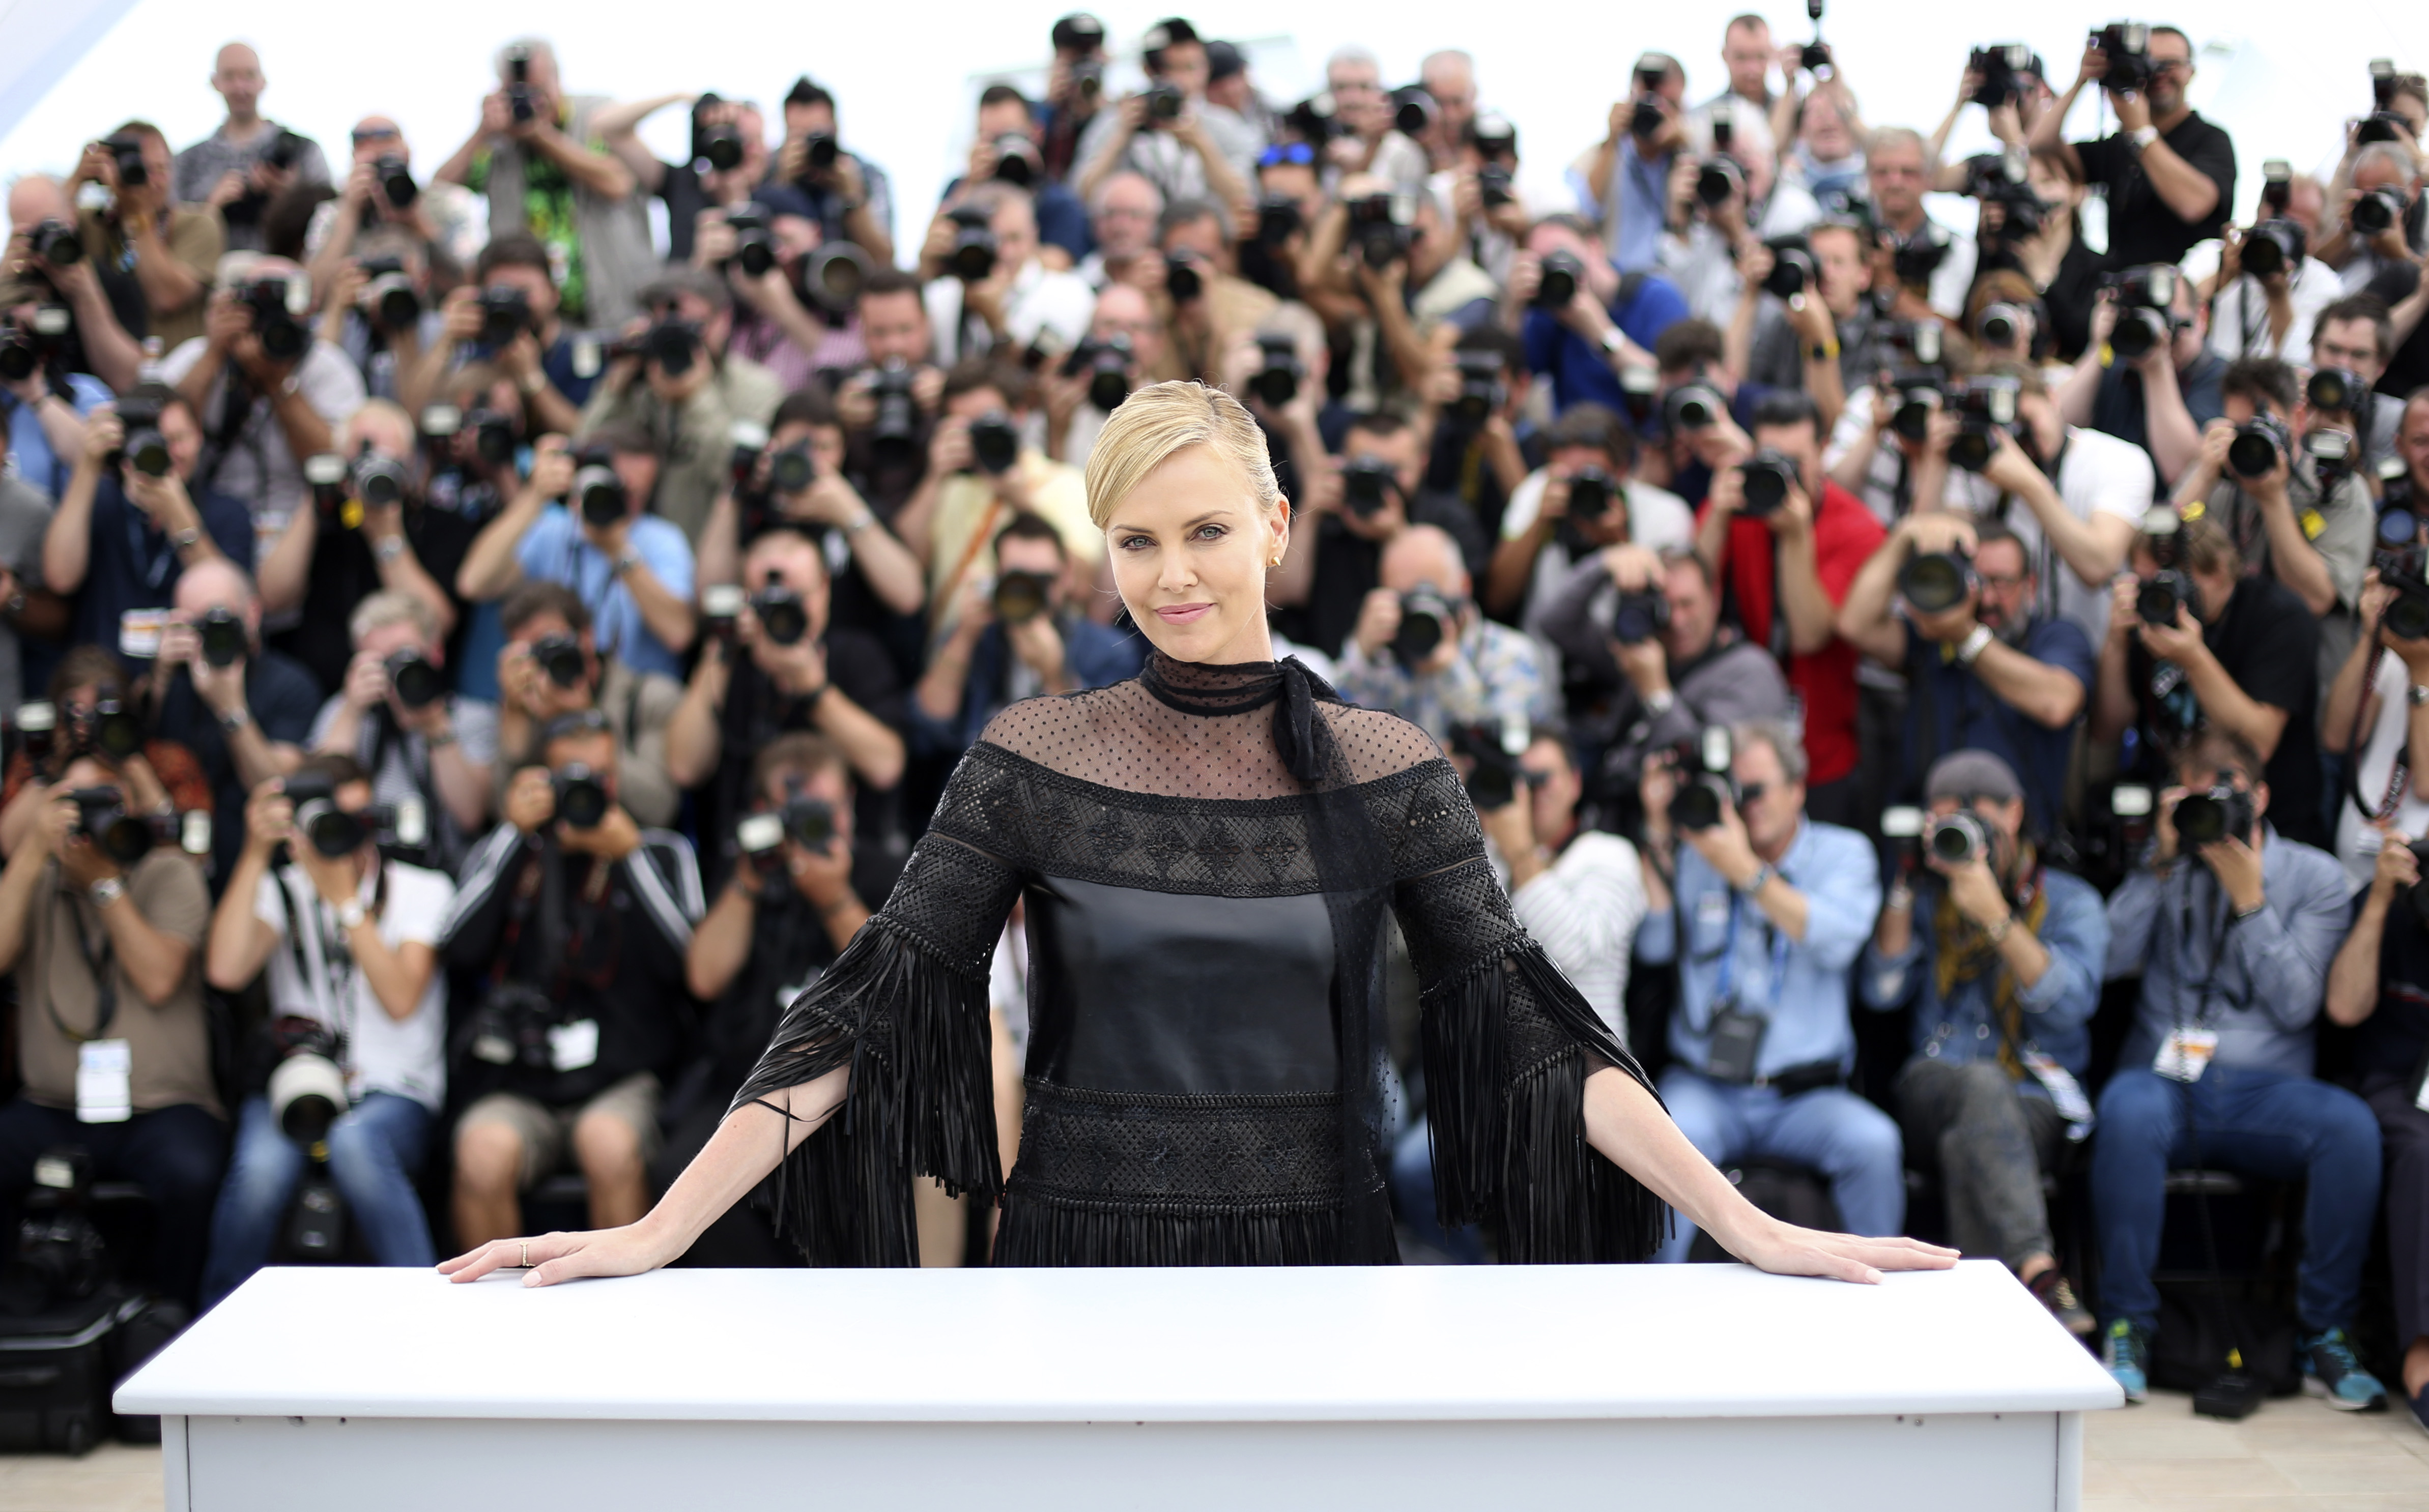 Hollywood takes over Cannes Film Festival 2015